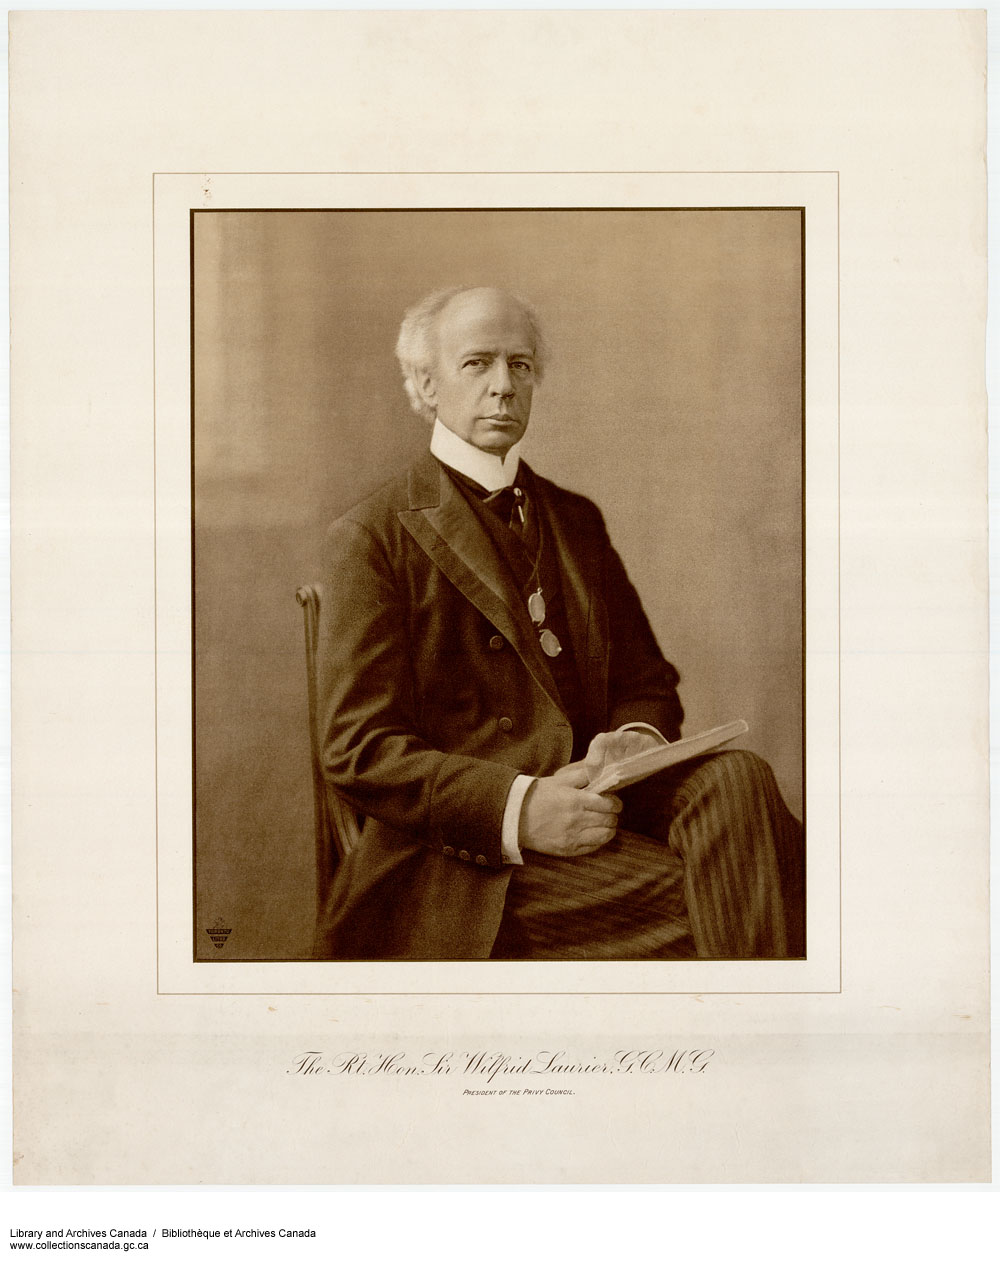 The Right Hon. Sir Wilfrid Laurier, G.C.M.G. (item 1)